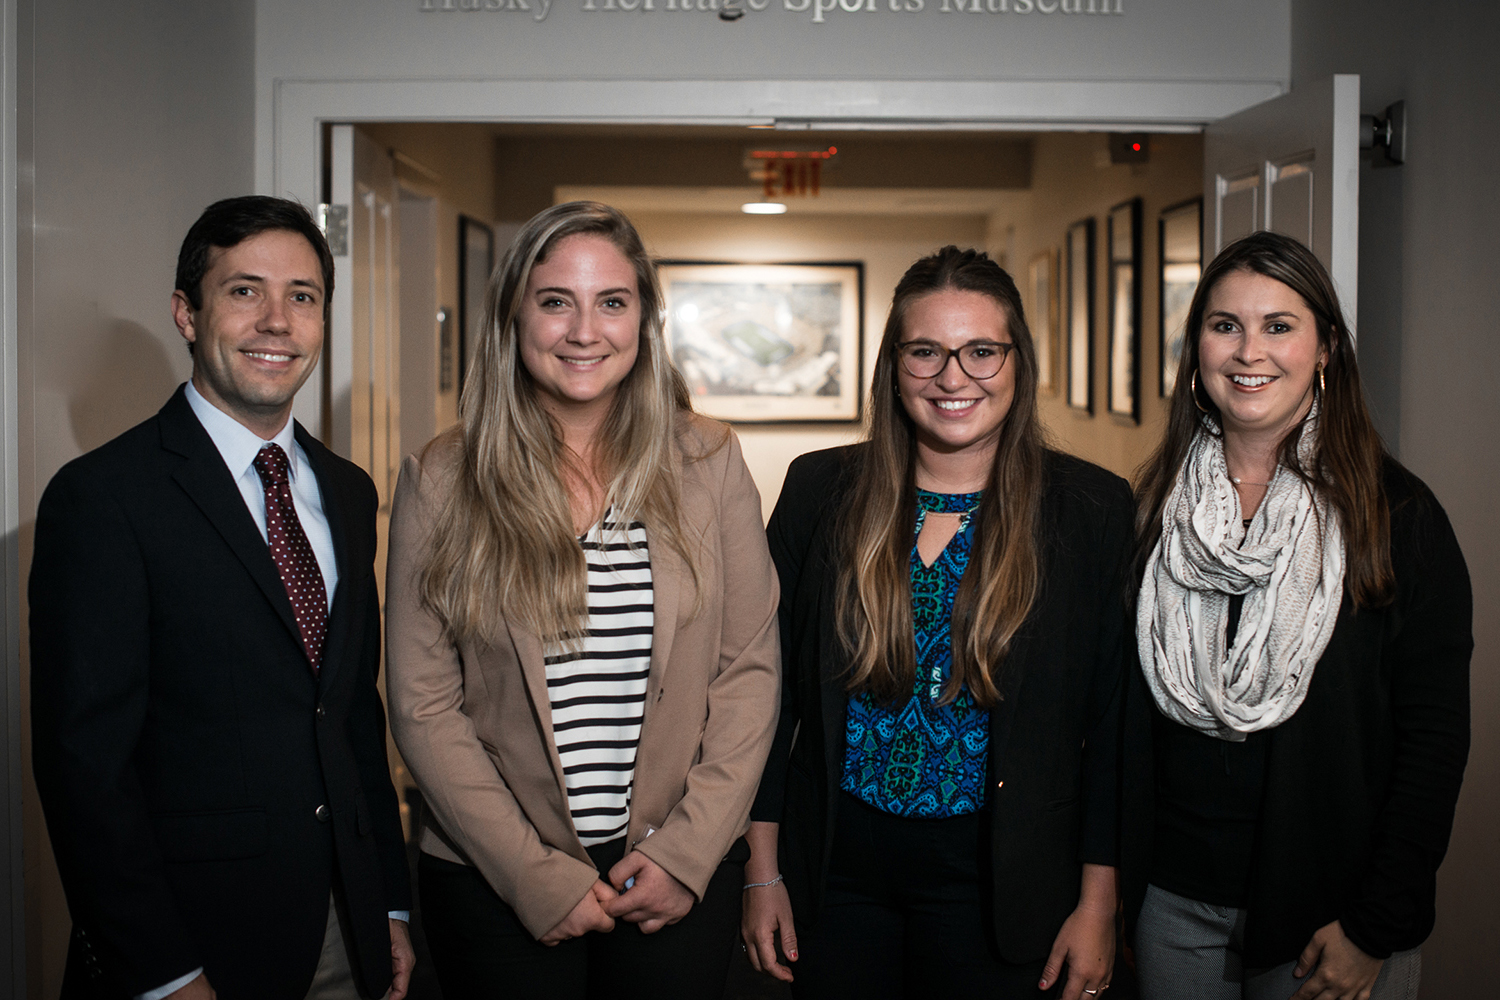 The creators of LambdaVision with two undergraduate student interns who helped represent the company during the CCEI fellowship and again at the Wolff competition. From left, Dr. Jordan Greco '10 (CLAS), '15 Ph.D., Molly Zgoda '17 (CLAS), Audrey Gallo '17 (CLAS), and Dr. Nicole Wagner '07 (CLAS), '13 Ph.D. (Nathan Oldham/UConn photo)